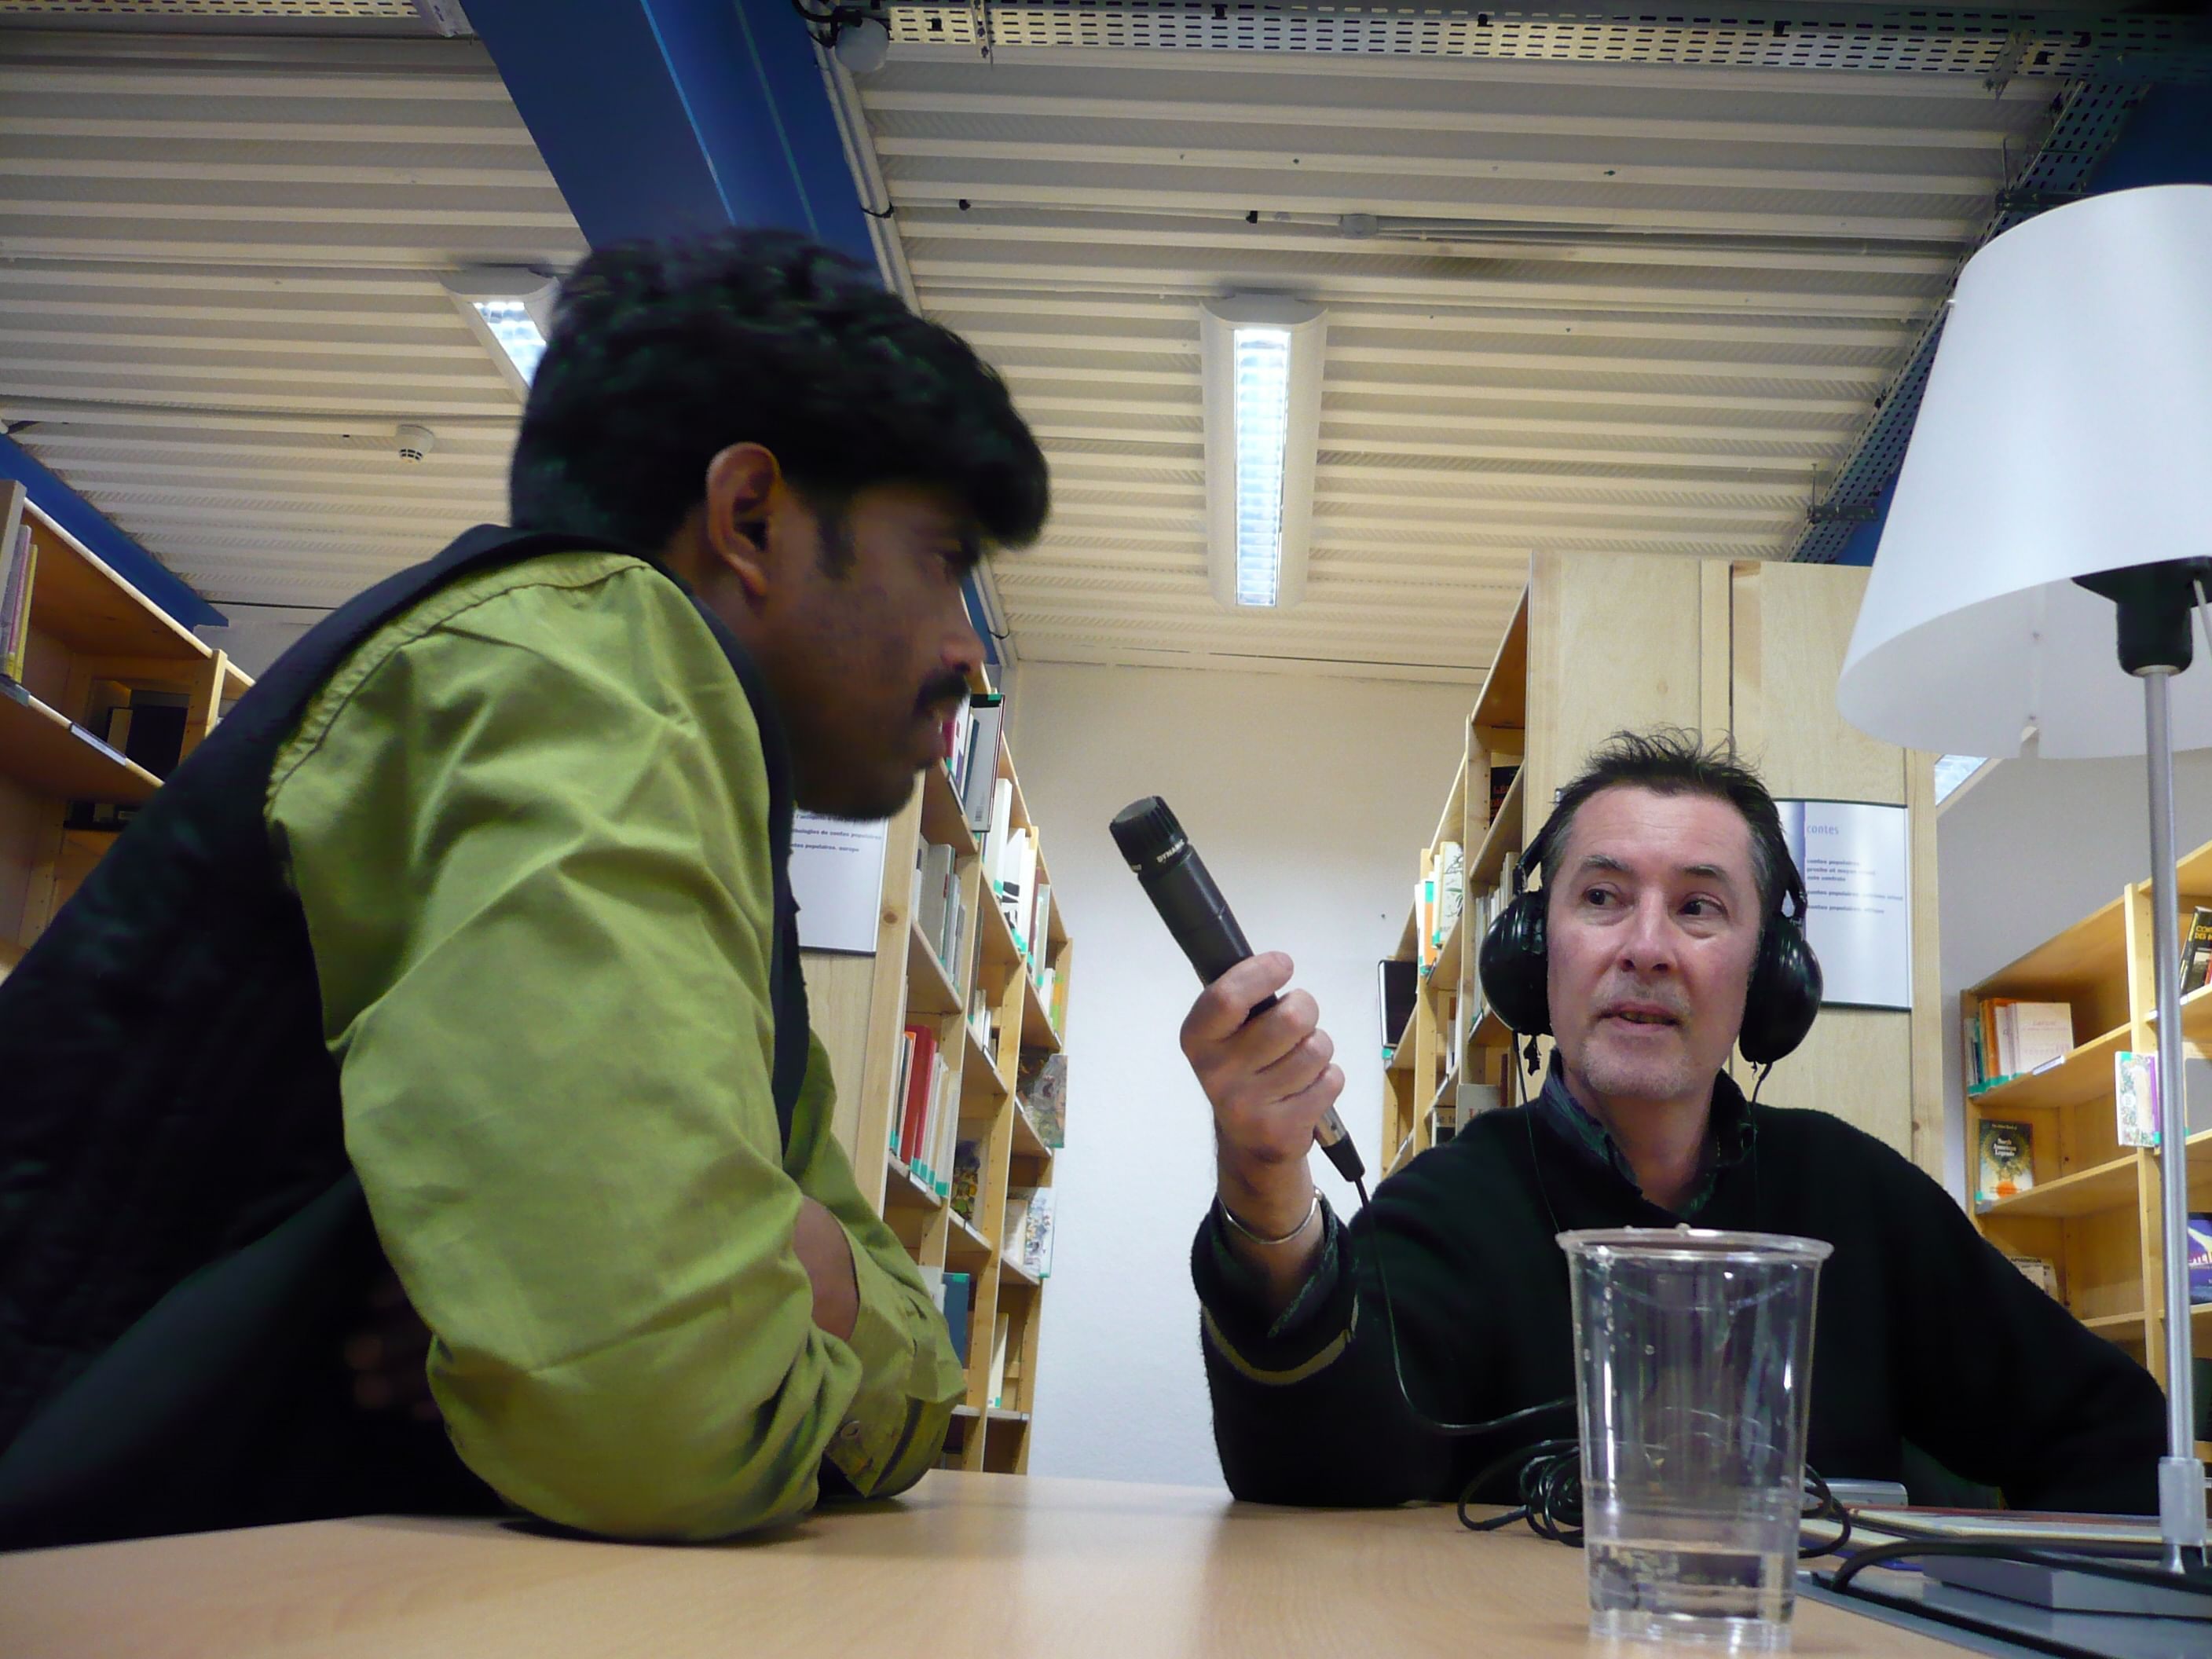 Bhajju at the BBC studio for the BBC Your Story radio program.